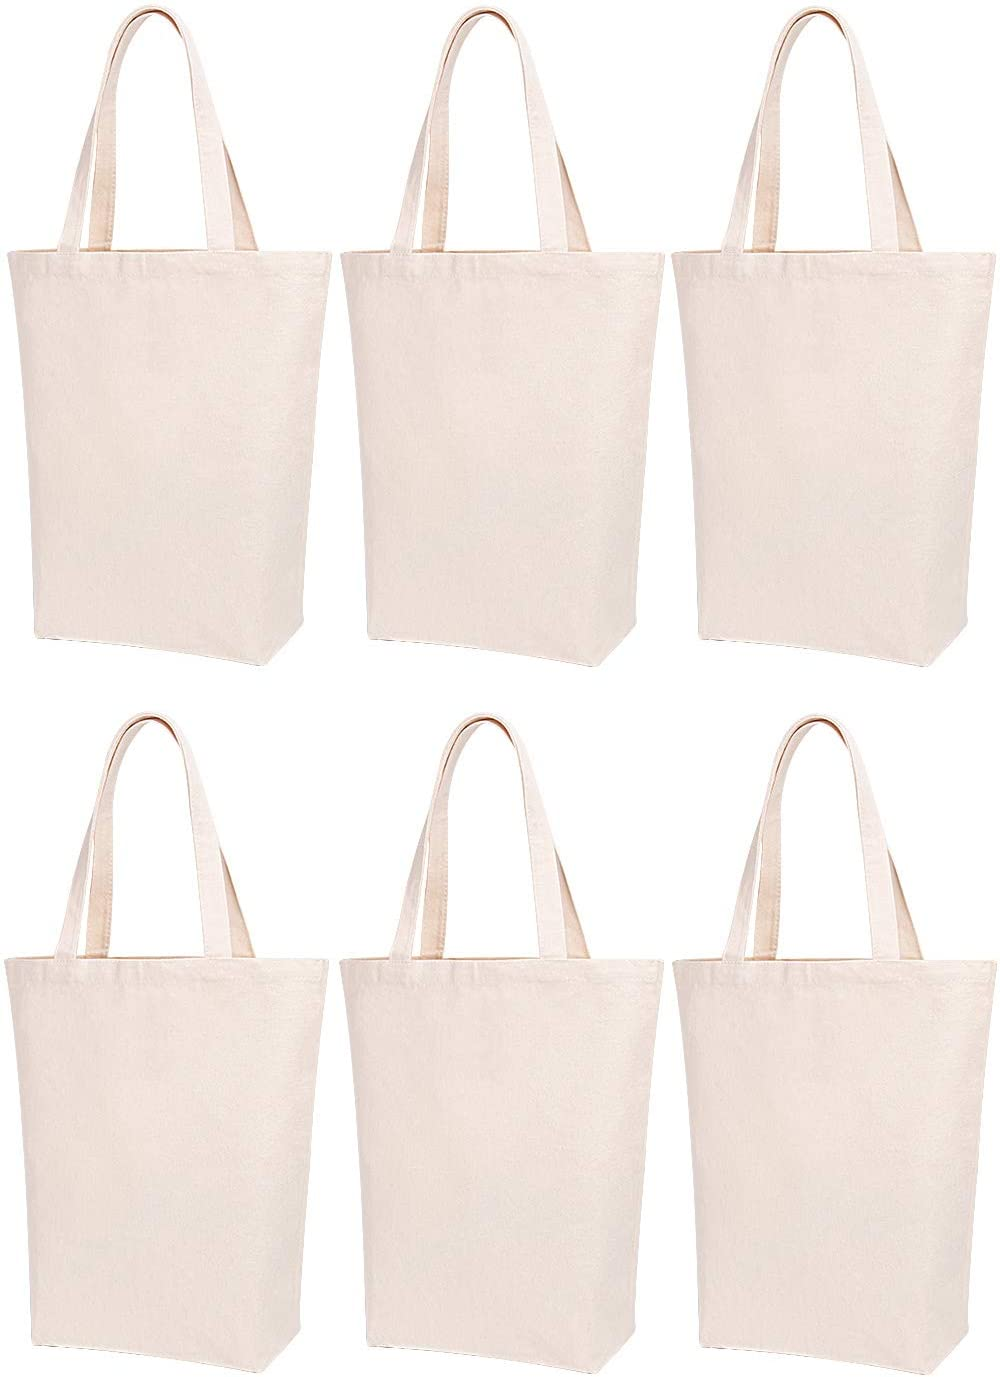 Don/'t Doubt Yourself Canvas Tote Bag 4 colors